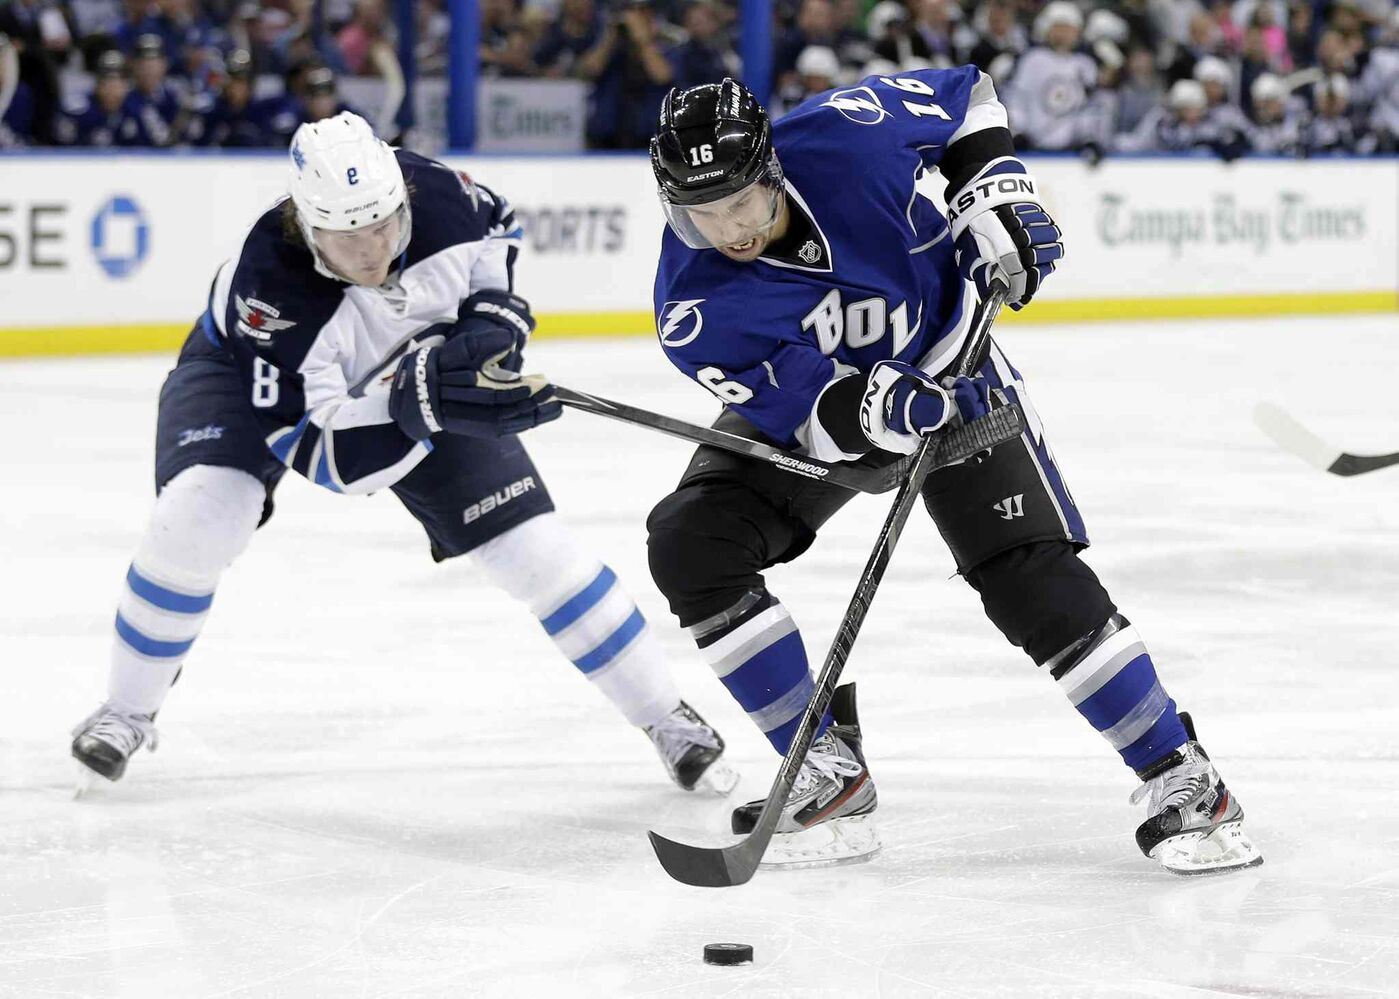 Tampa Bay Lightning winger Teddy Purcell (right) is hooked by Winnipeg Jets defenceman Jacob Trouba during the second period. (Chris O'Meara / The Associated Press)